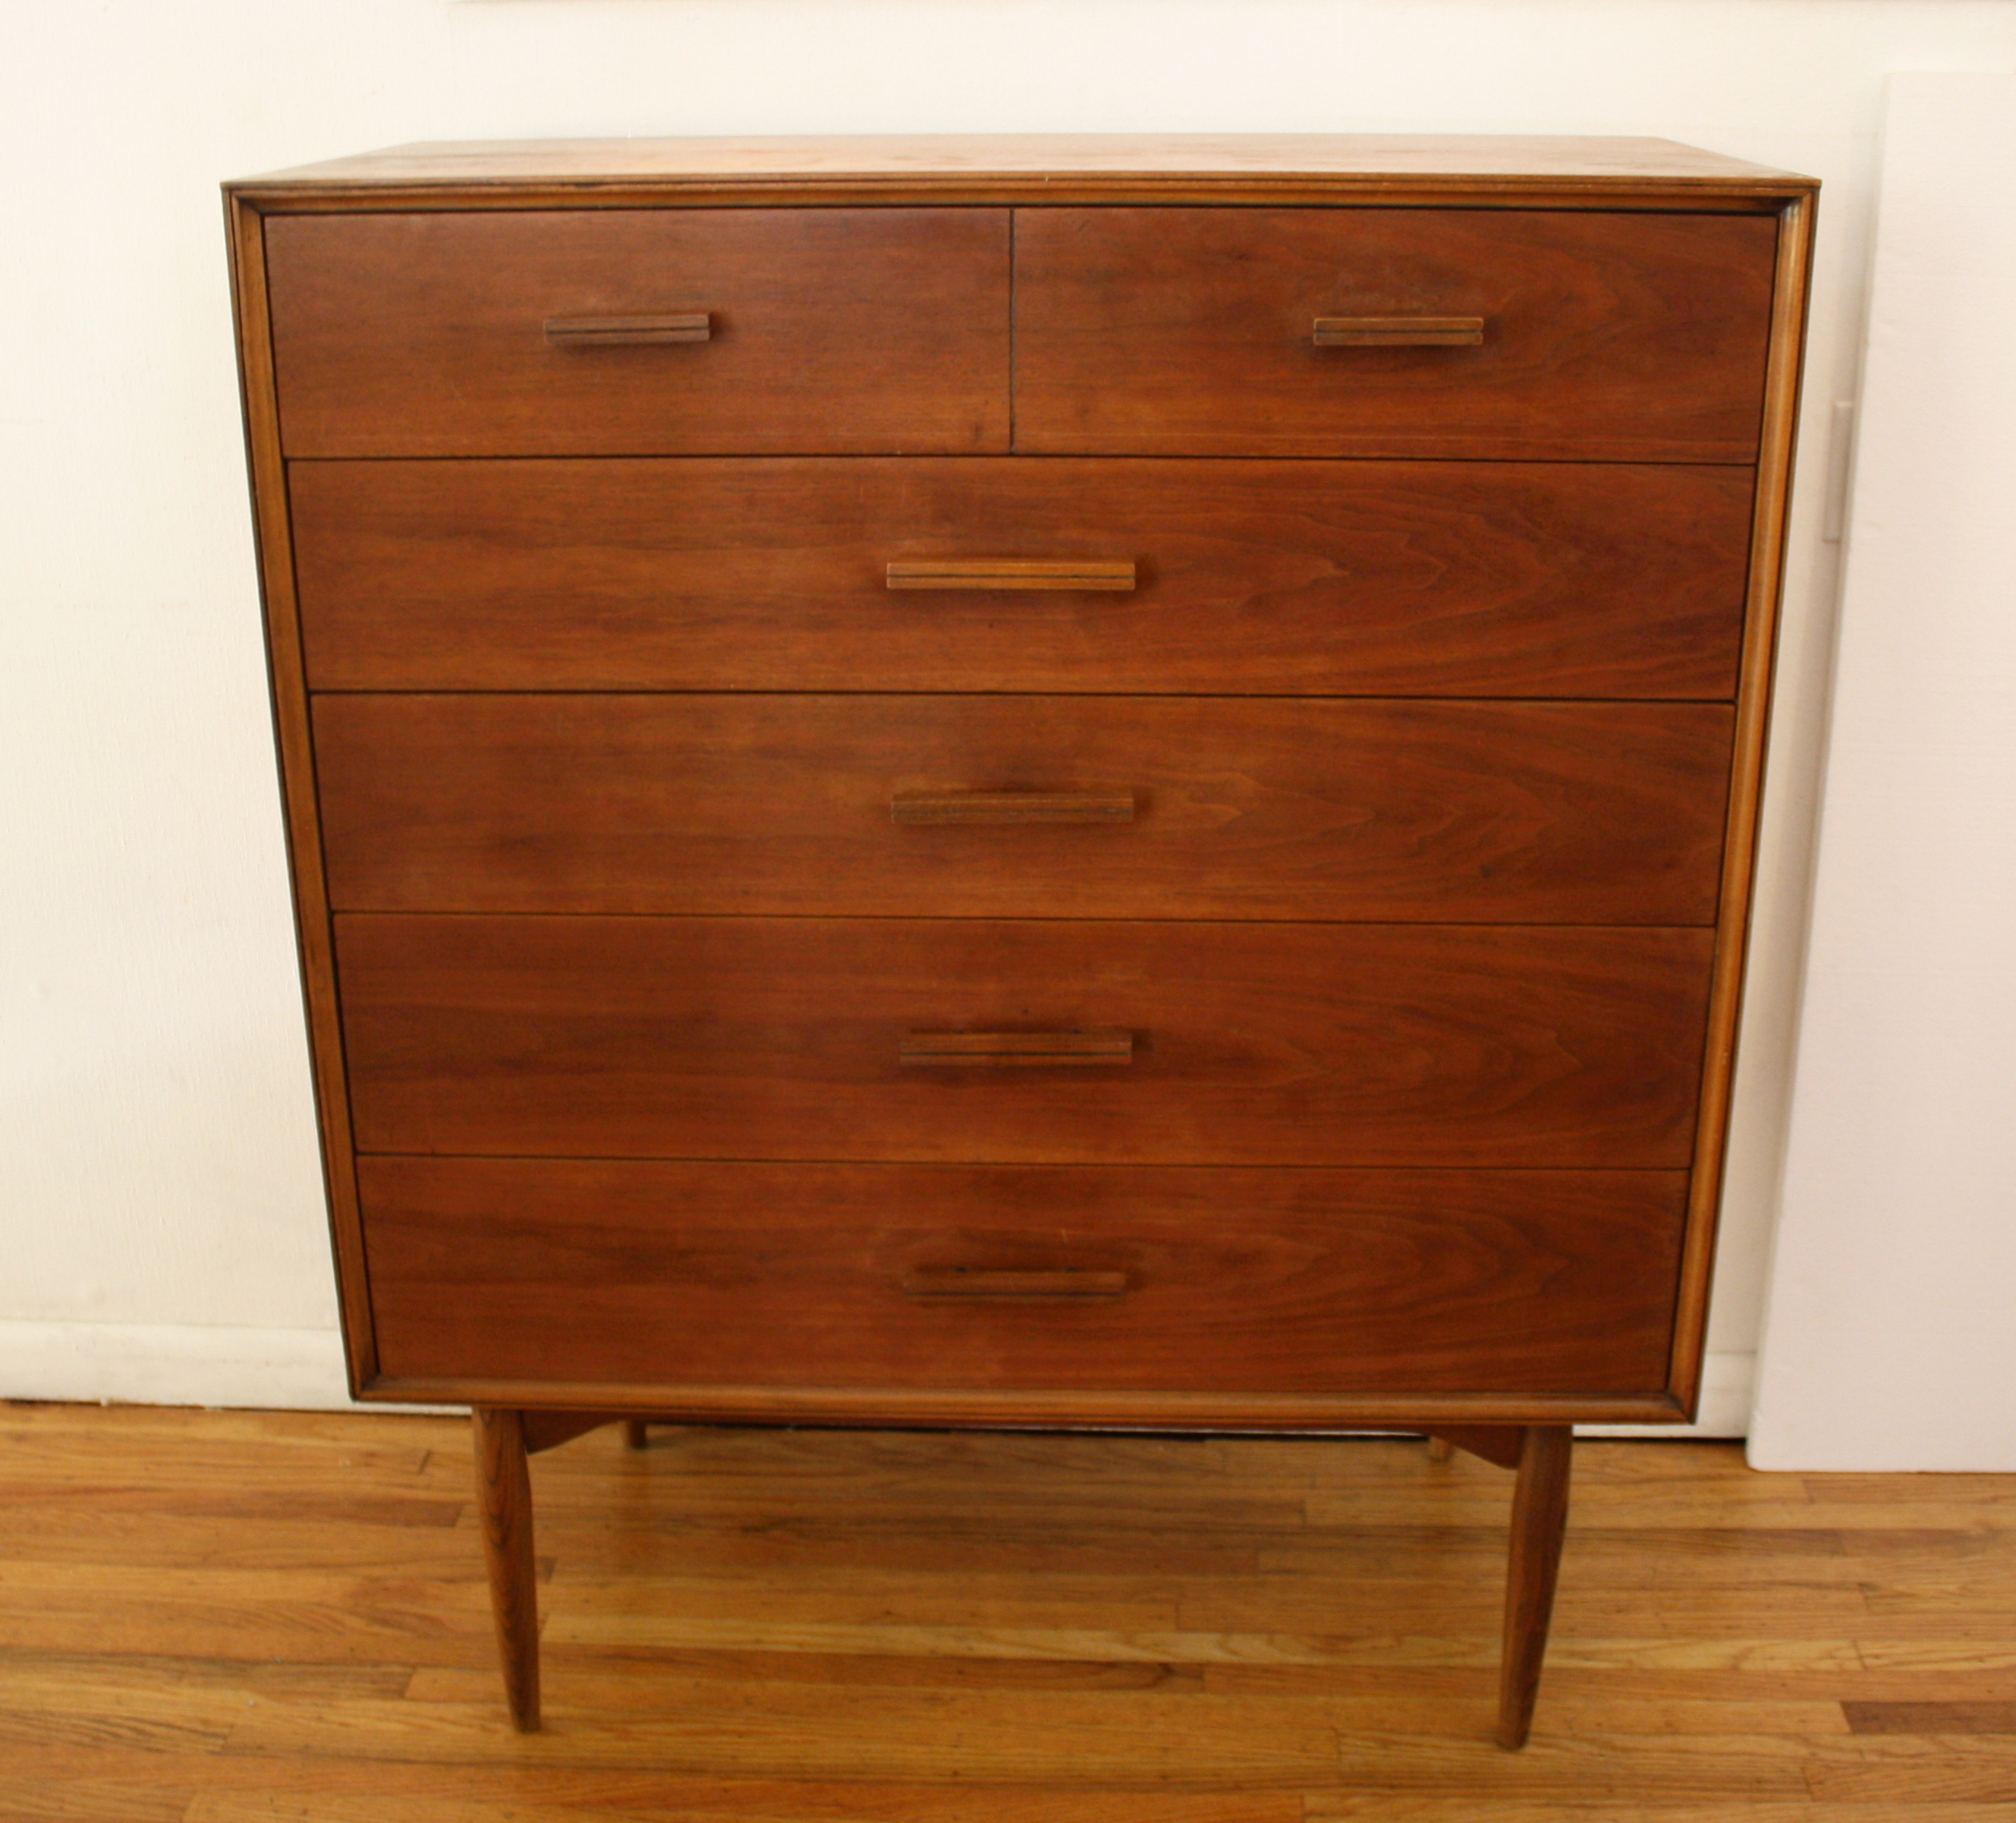 mcm tall dresser with block handles 1.JPG